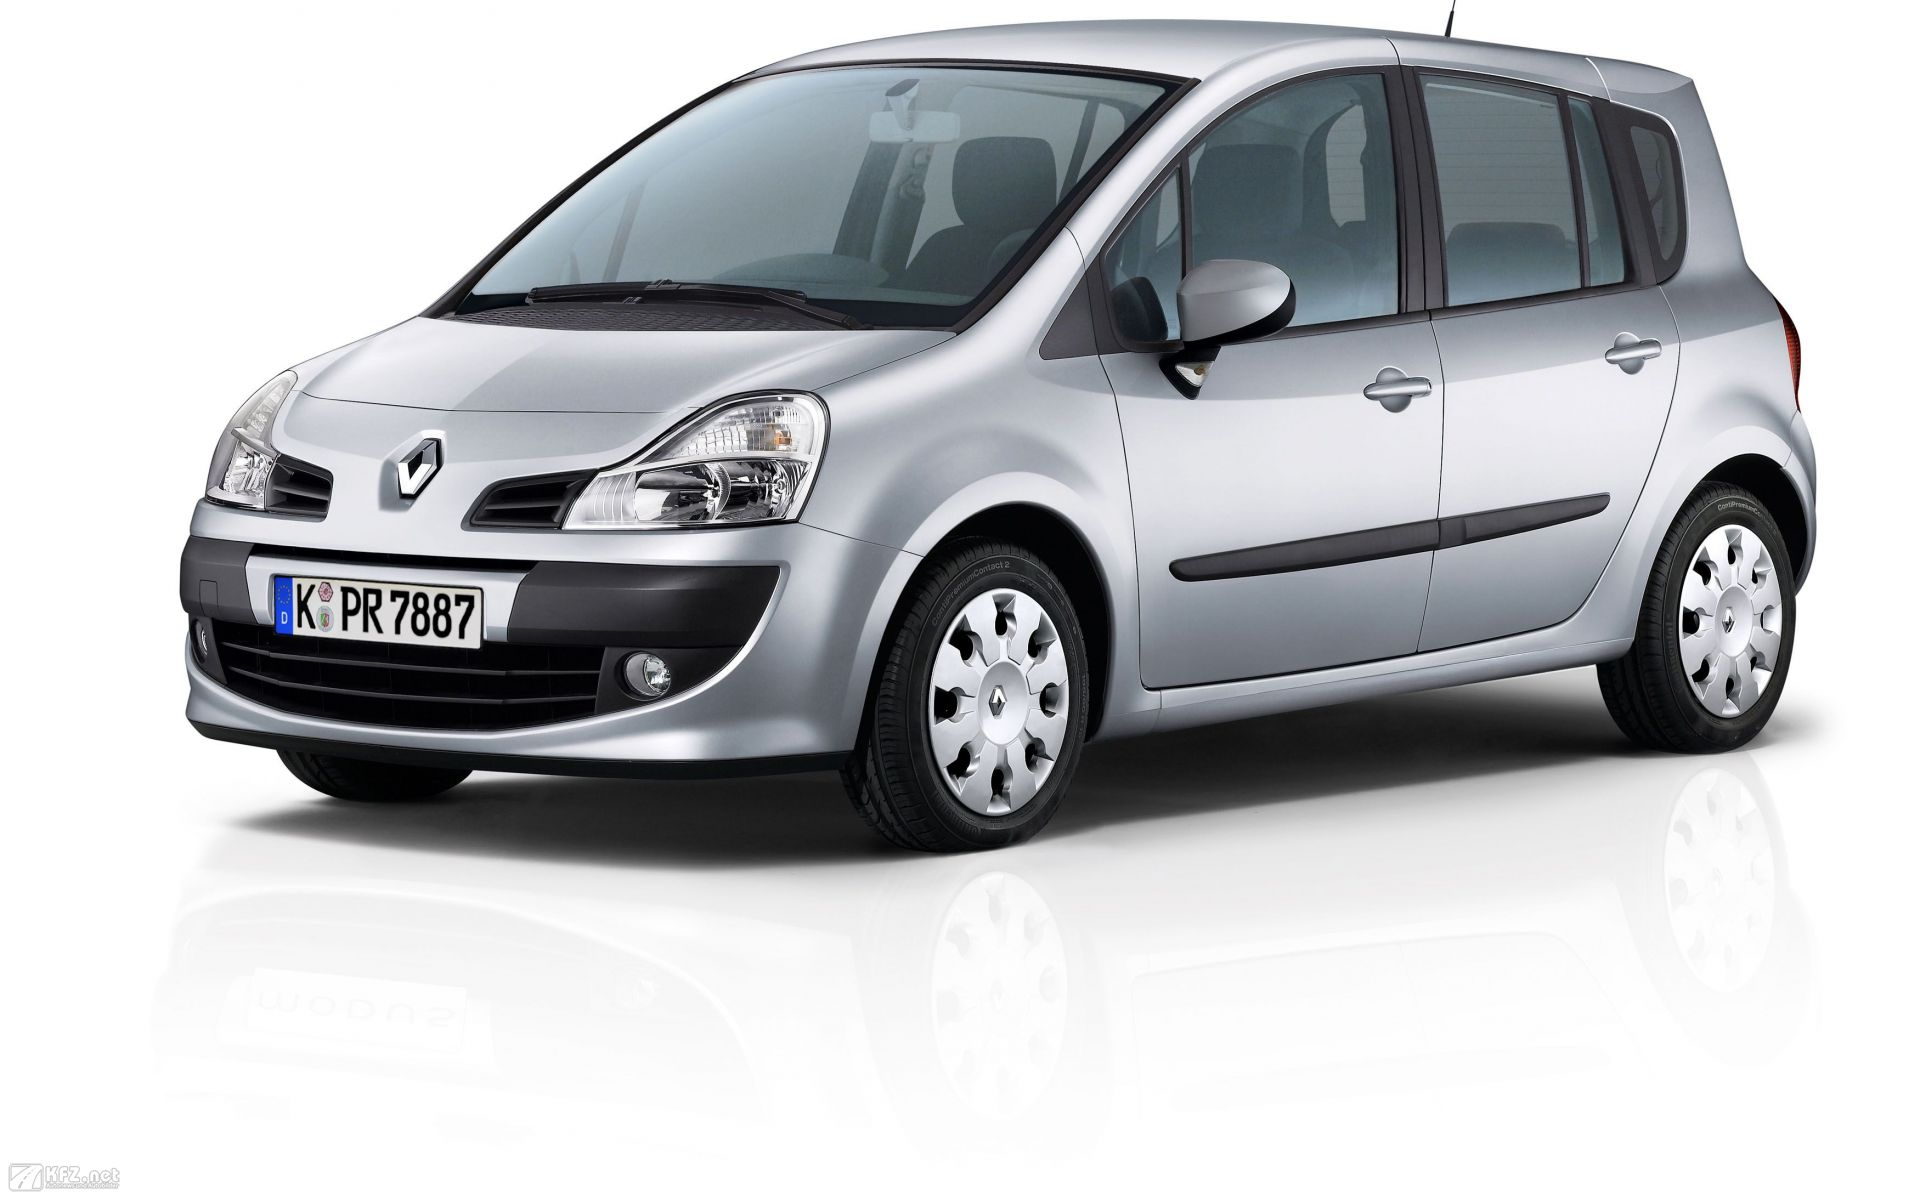 2011 renault modus pictures information and specs auto. Black Bedroom Furniture Sets. Home Design Ideas